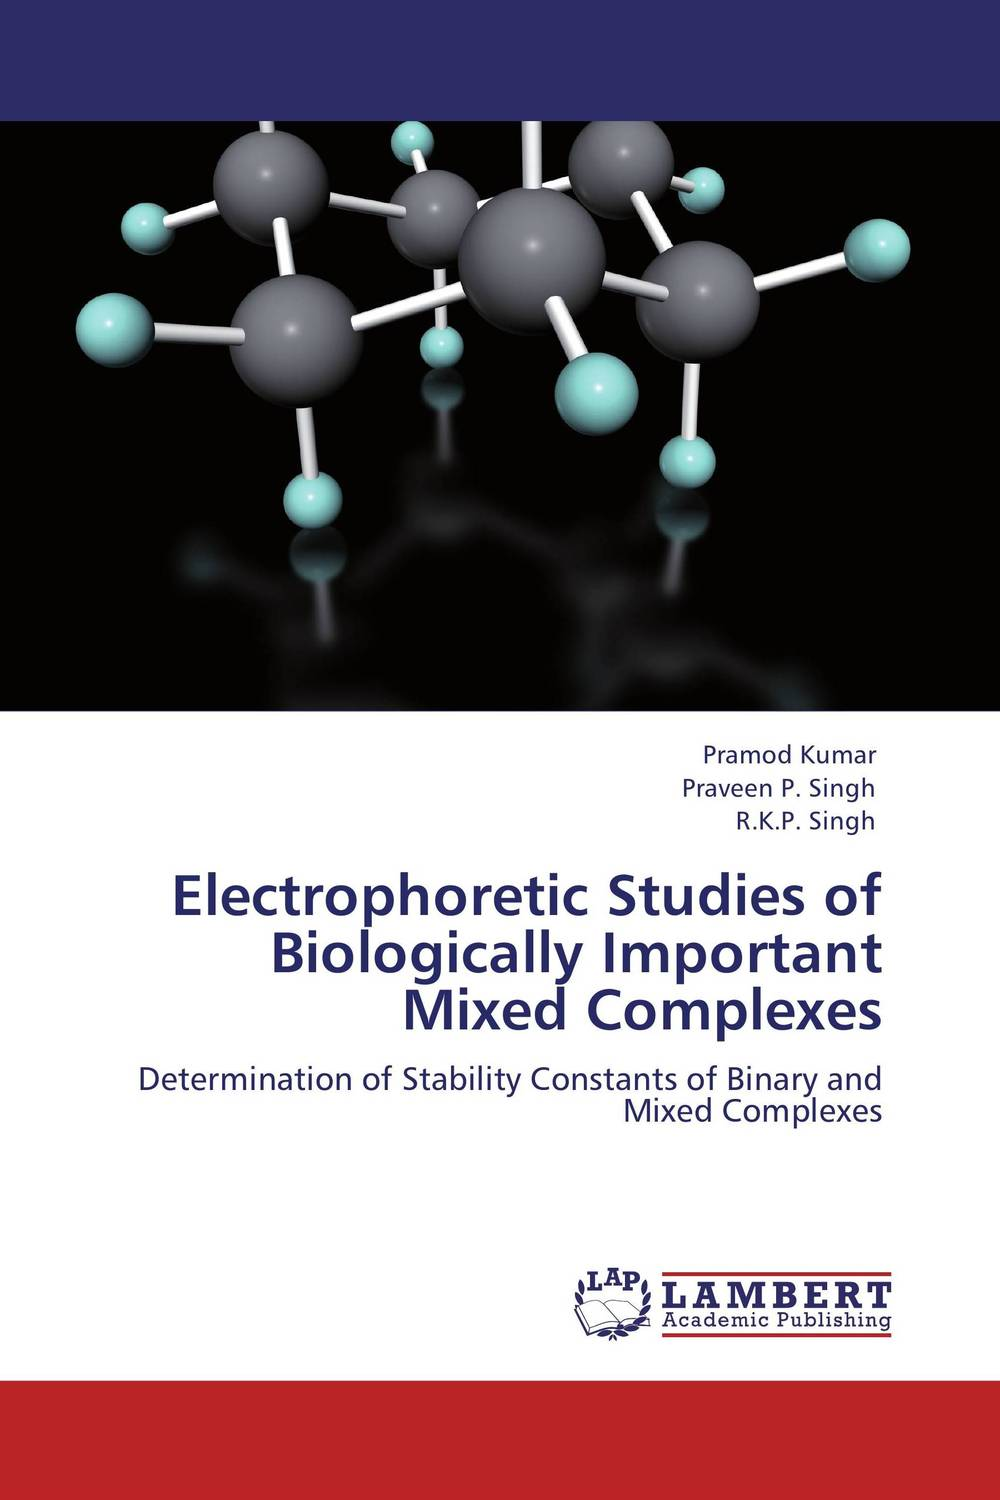 Electrophoretic Studies of Biologically Important Mixed Complexes rakesh kumar tiwari and rajendra prasad ojha conformation and stability of mixed dna triplex